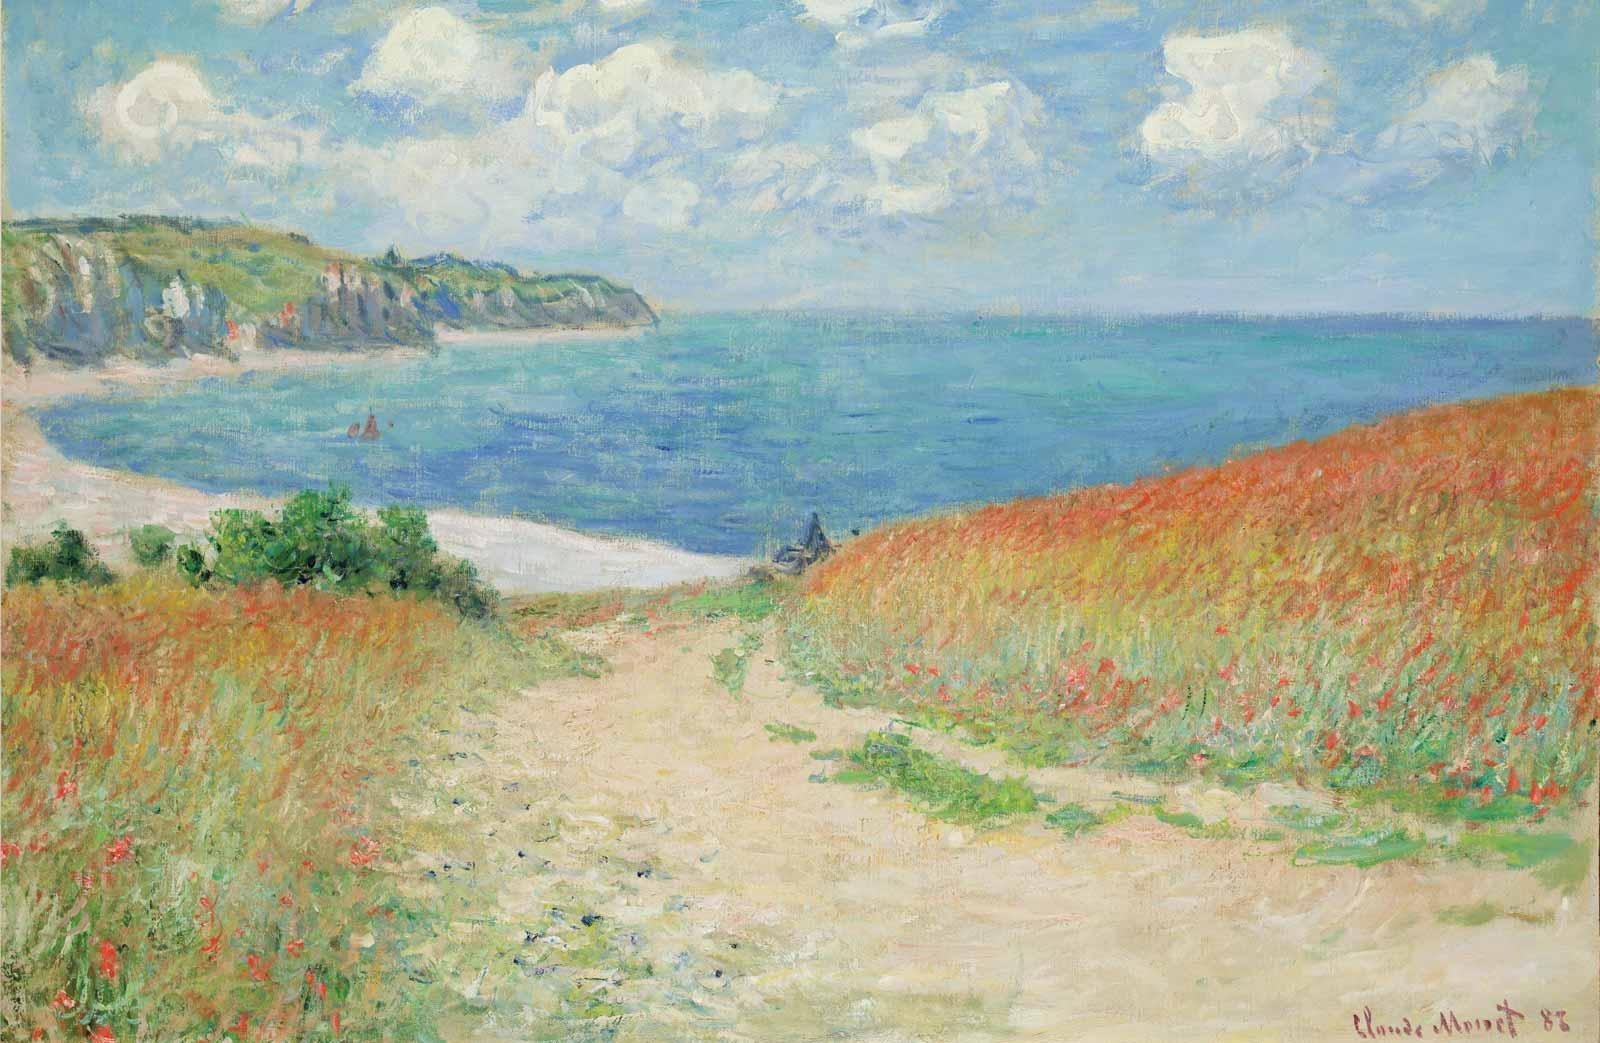 Claude Monet, Path in the Wheat Fields at Pourville, 1882.